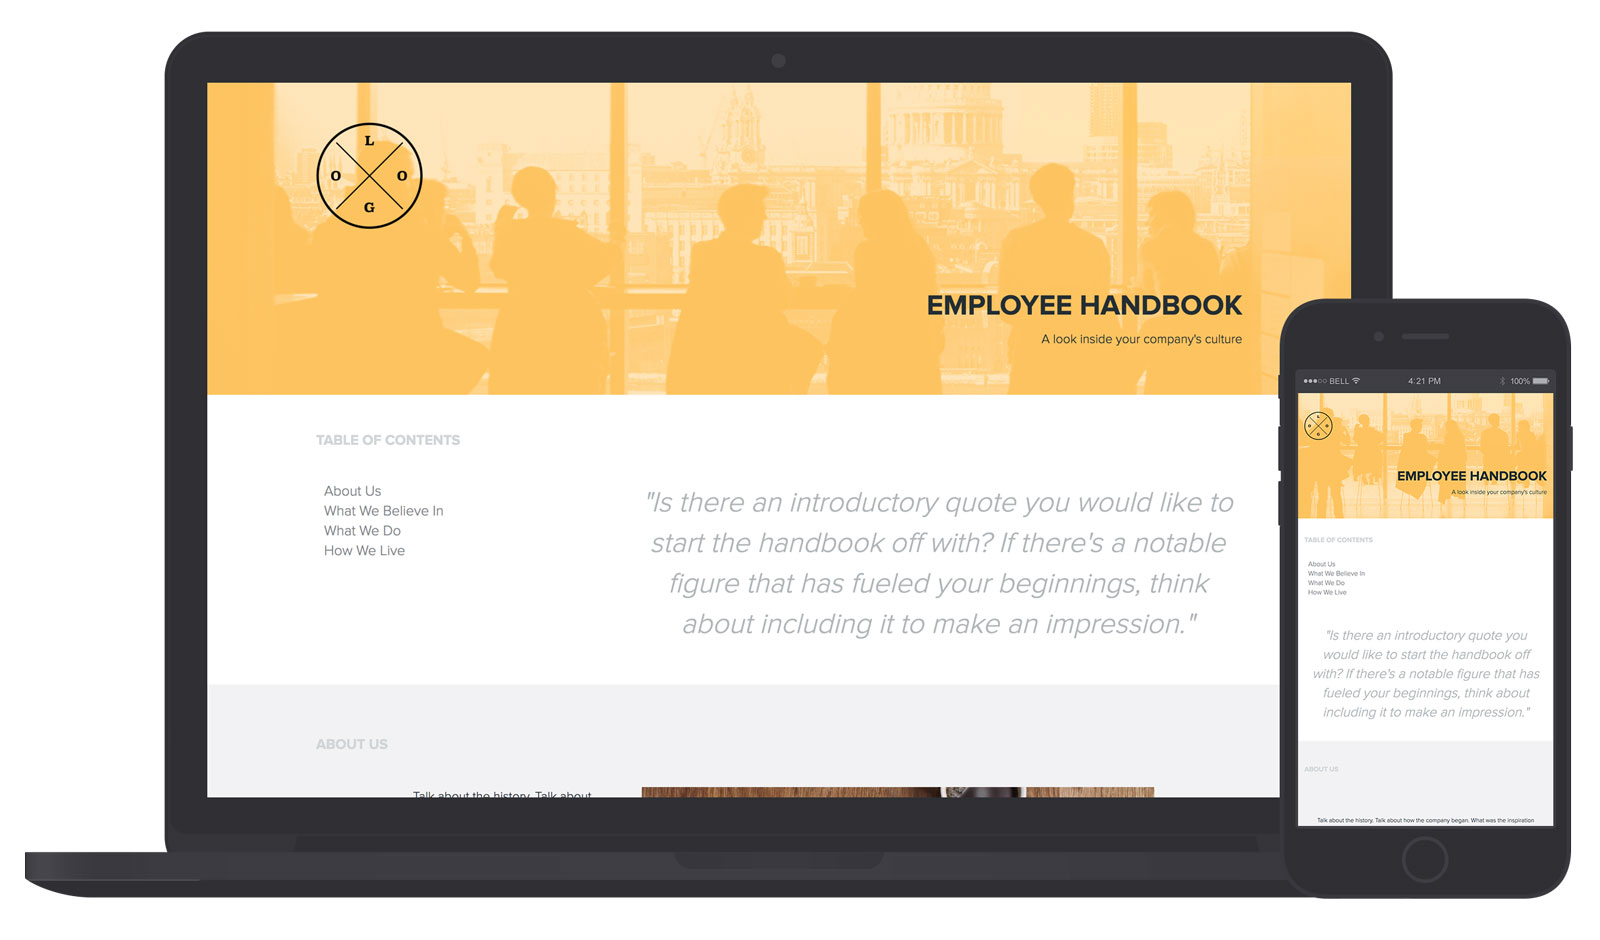 staff hand book This employee handbook sample includes a set of company rules and policies that employees are expected to follow download and customize it today.